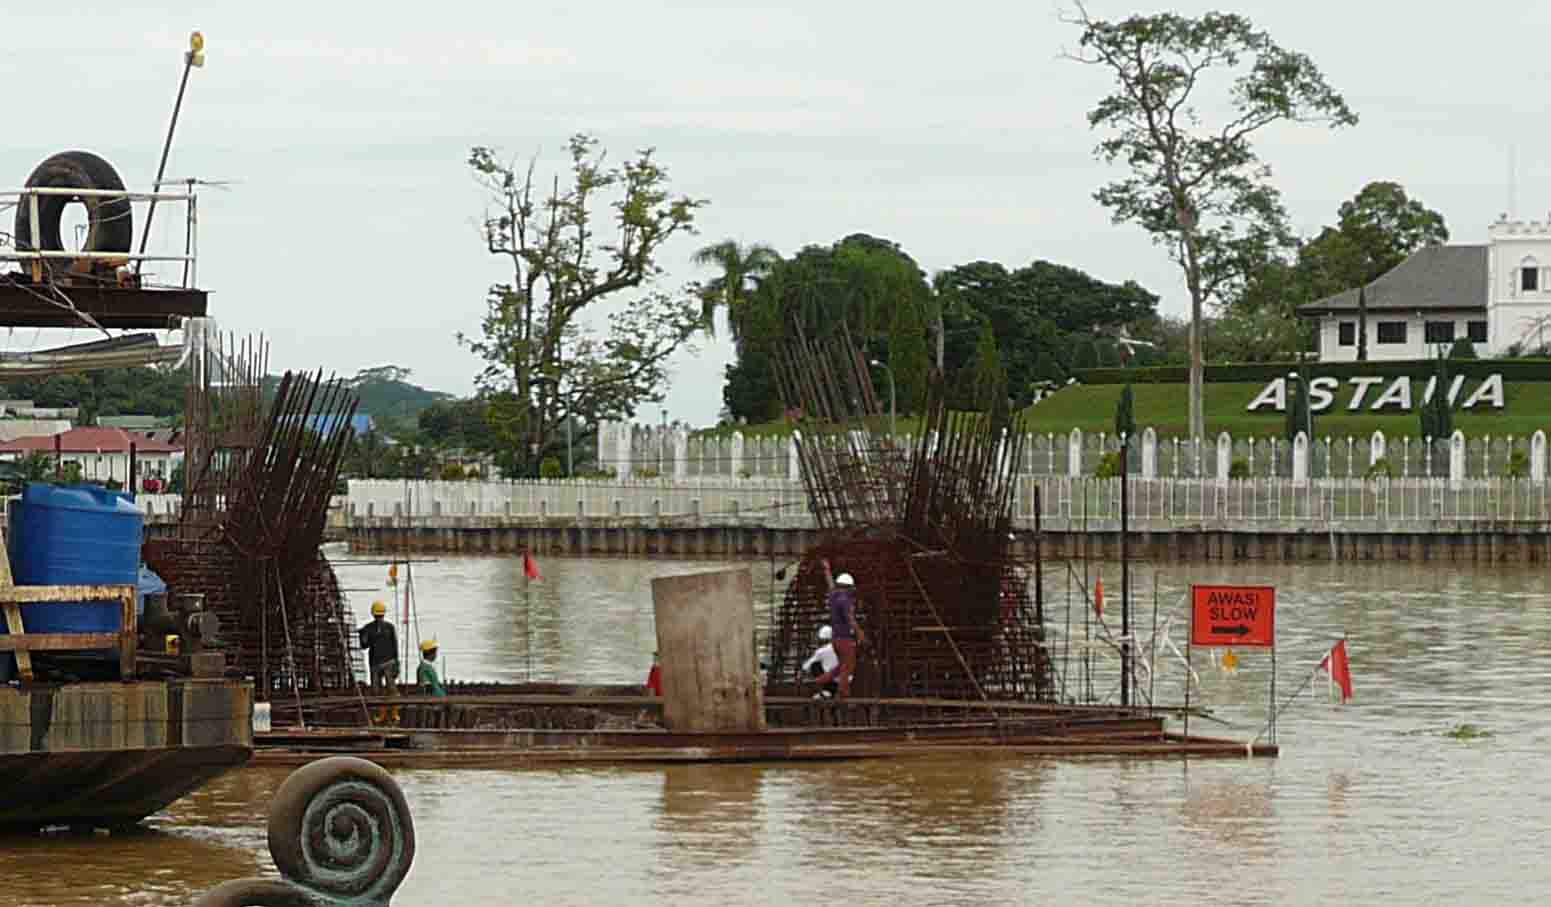 The construction of the 'Golden Bridge' has started (SHS photo-16 Nov. 2015)